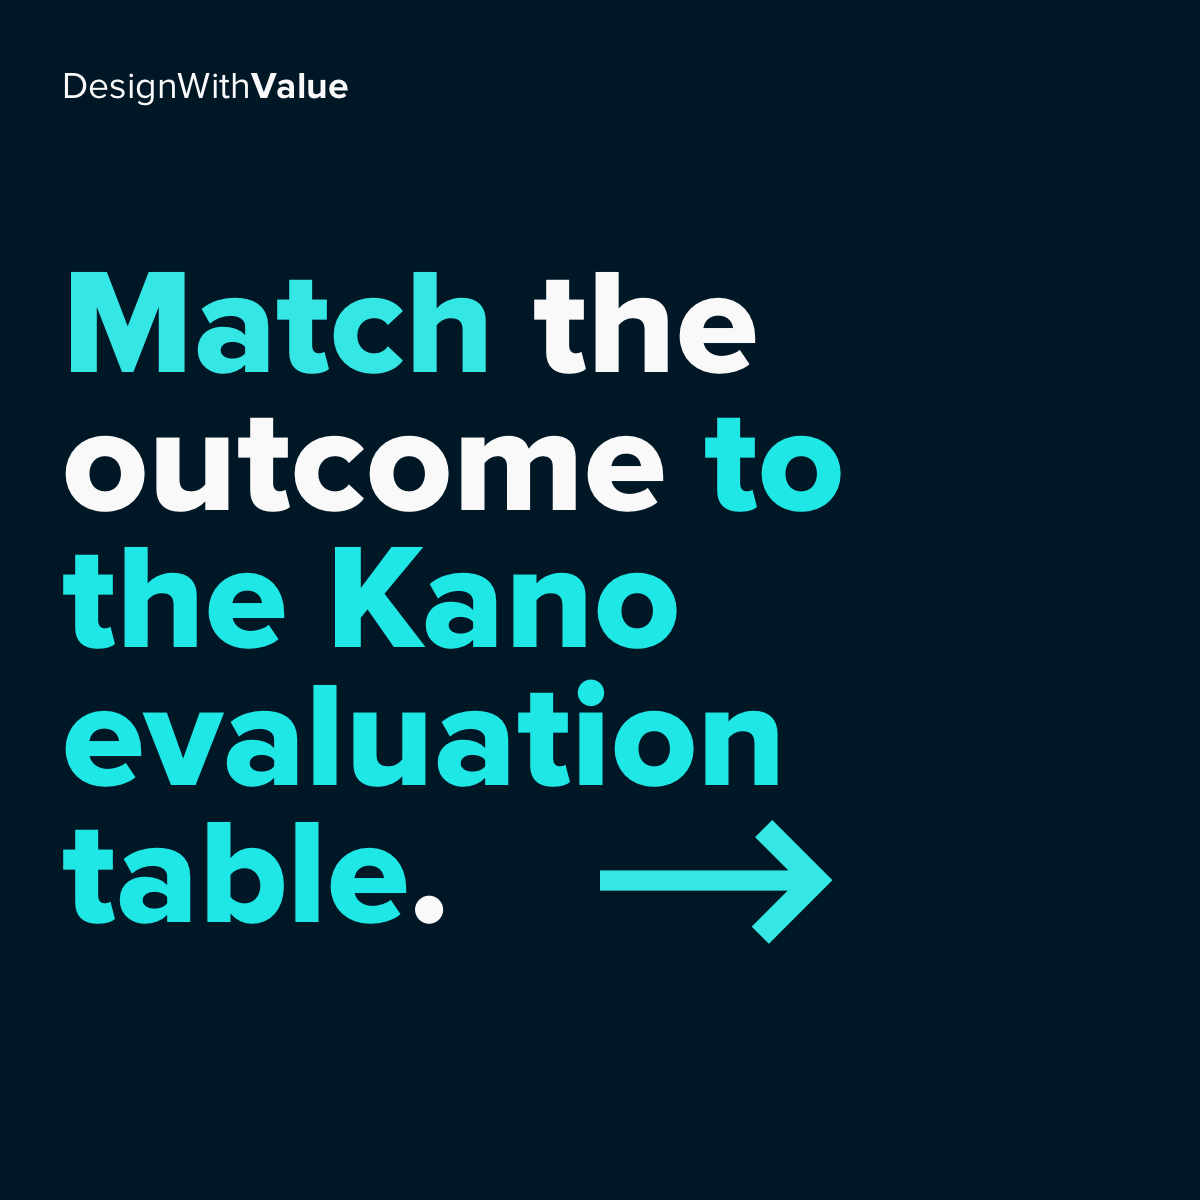 Match the outcome to the kano evaluation table.